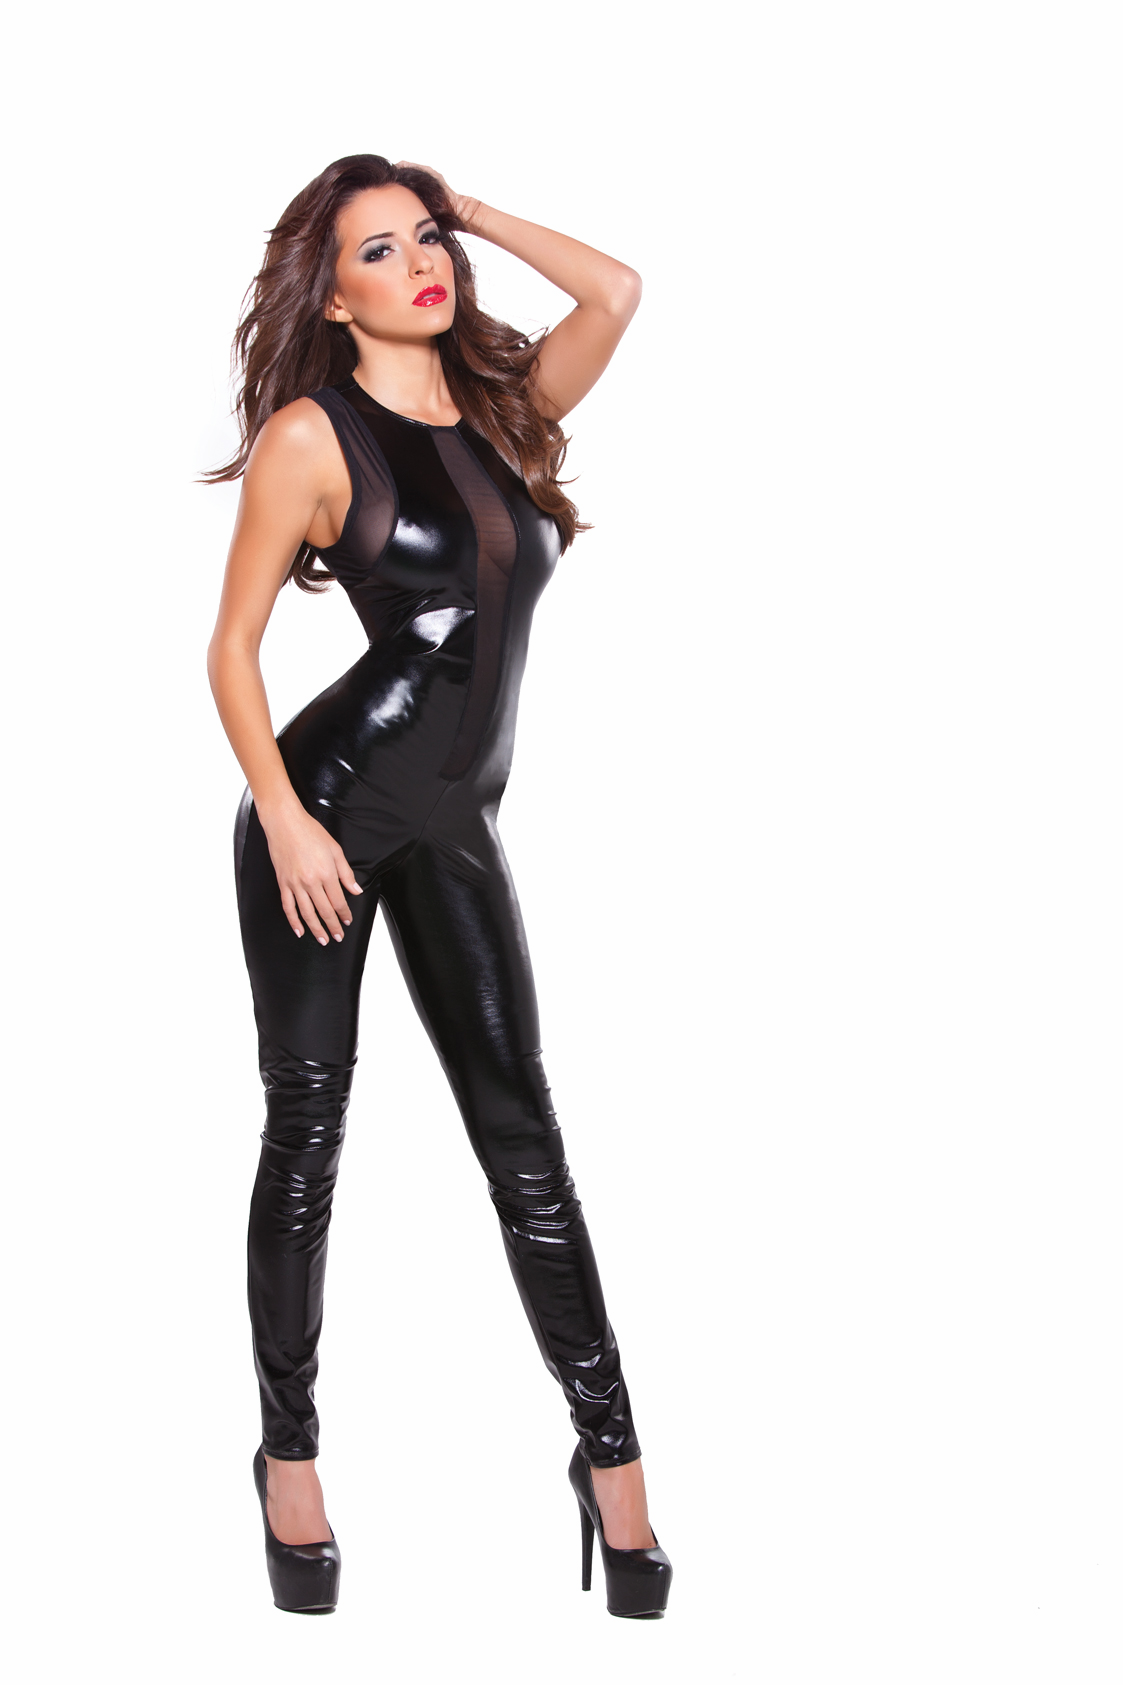 10-1152k Black Wetlook and Mesh Catsuit by Allure Lingerie